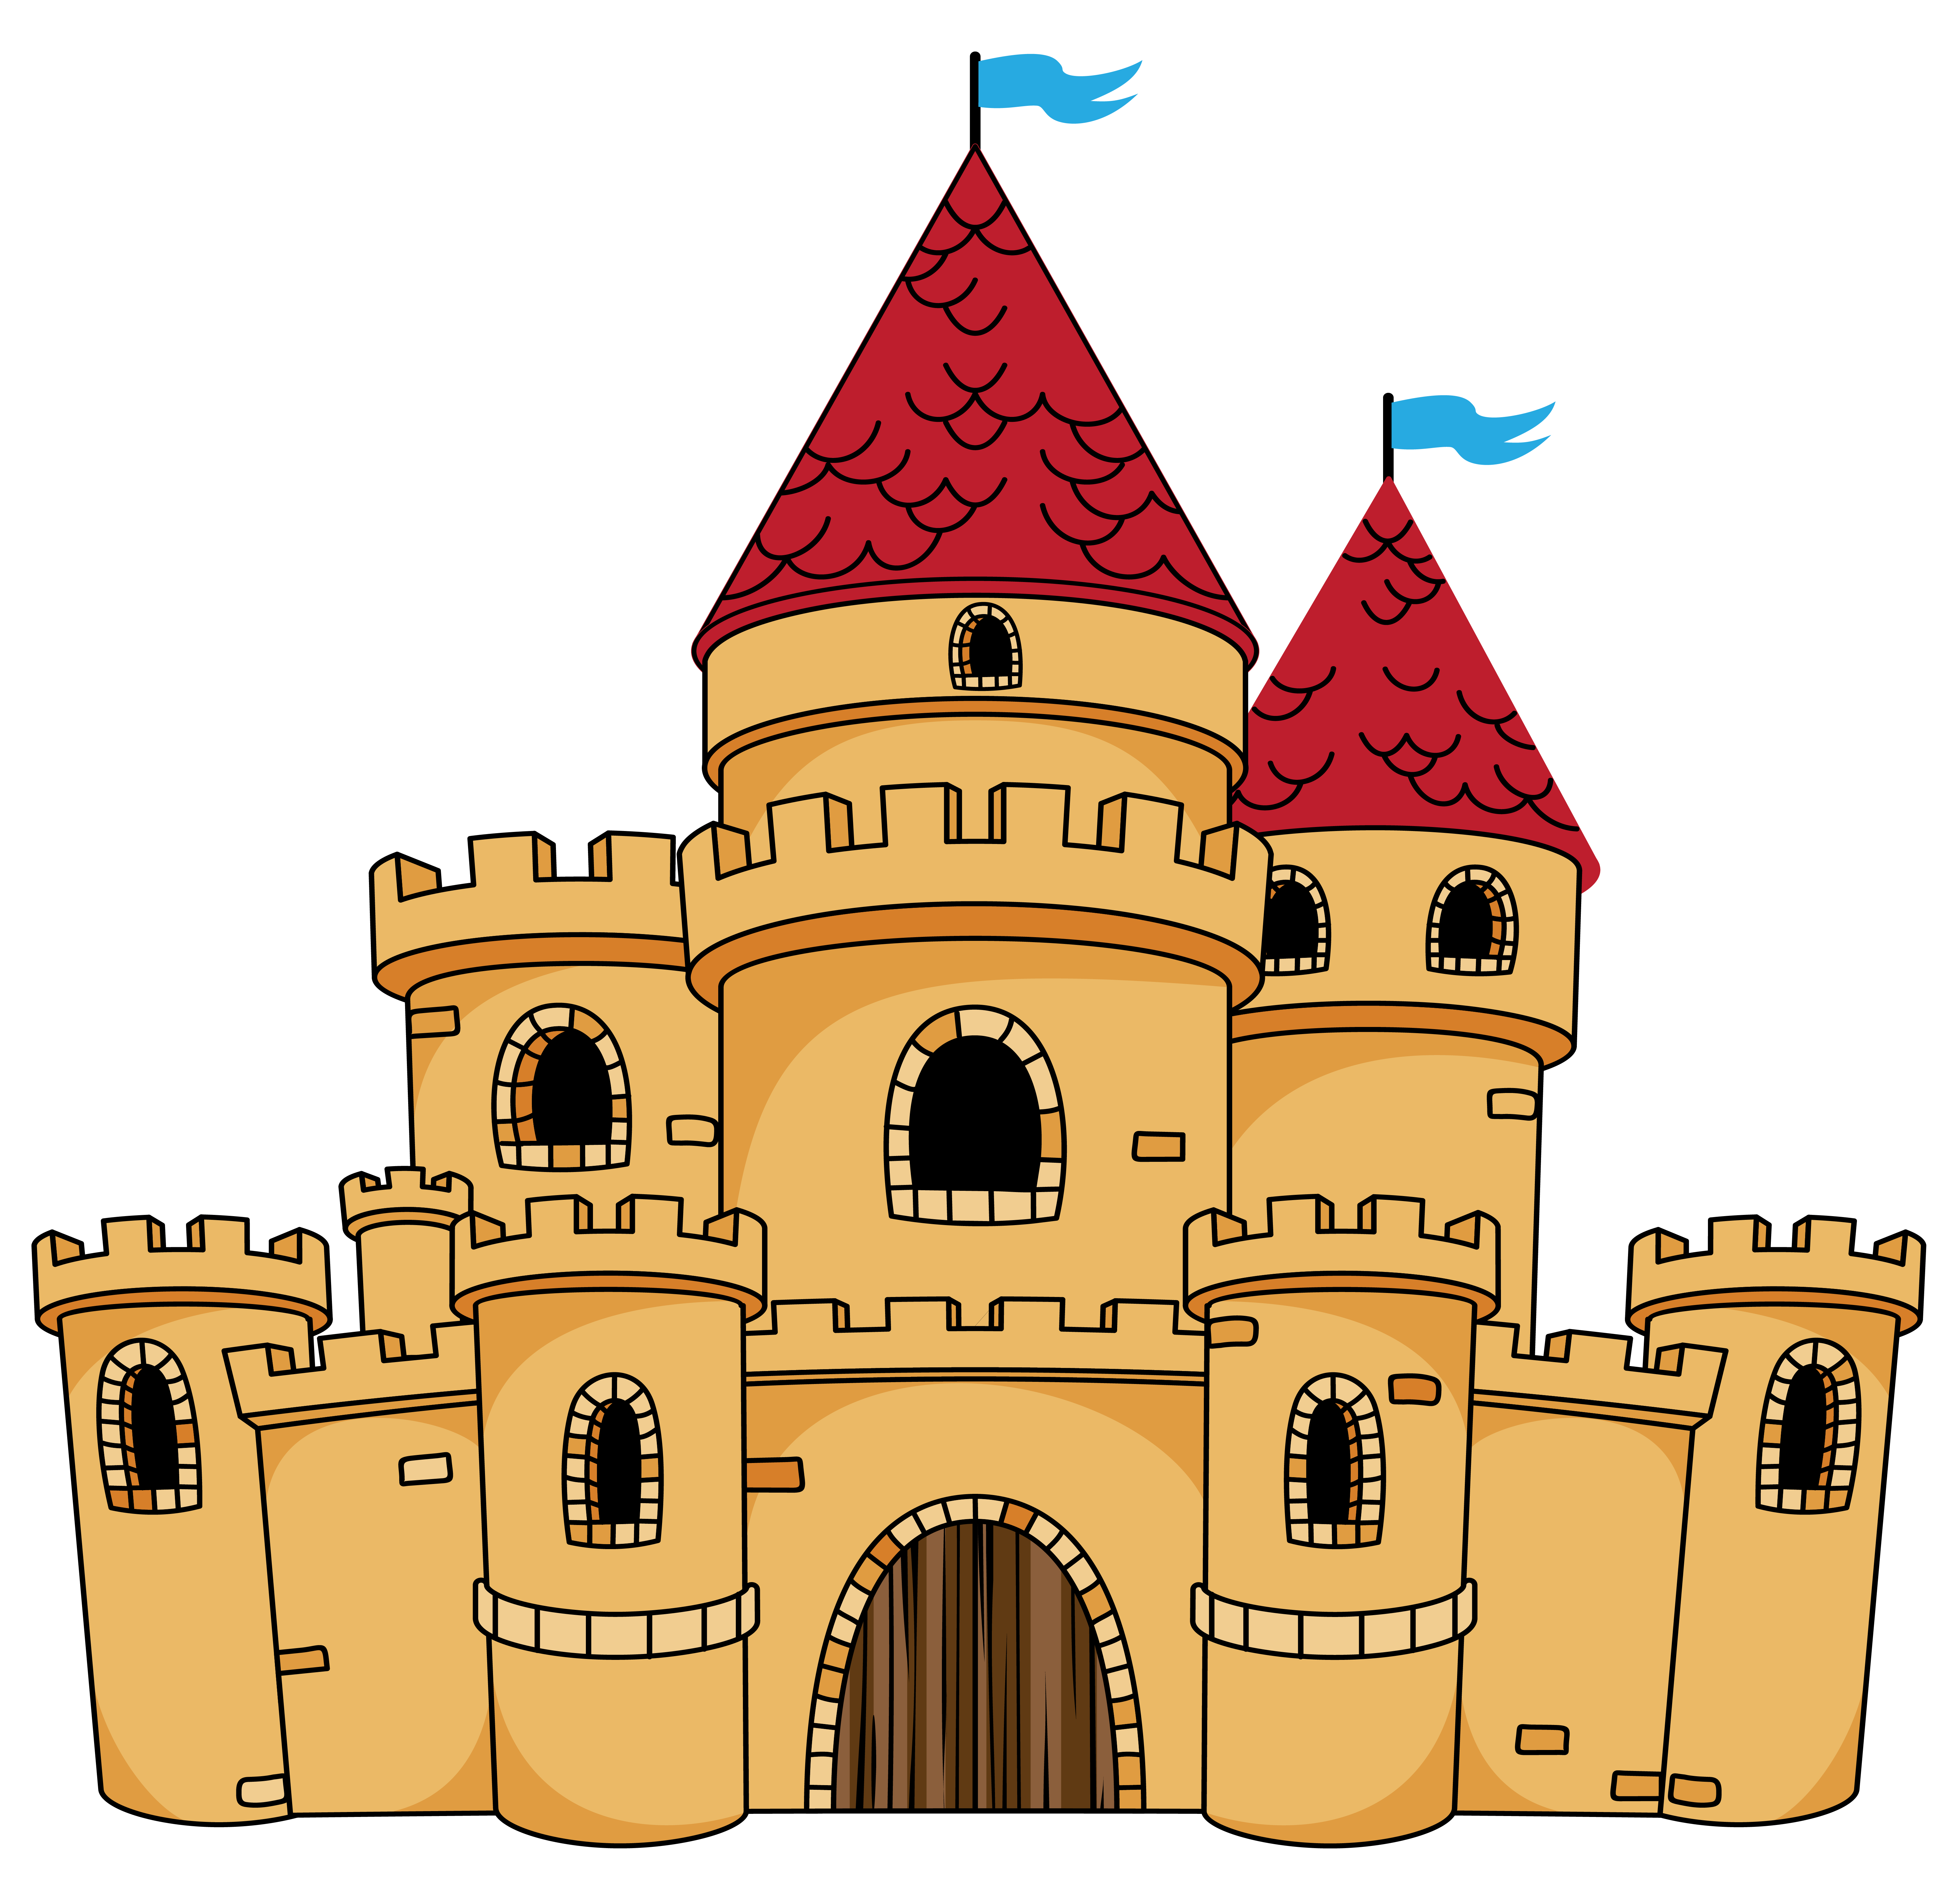 Cup clipart medieval. Castle cartoon drawing clip